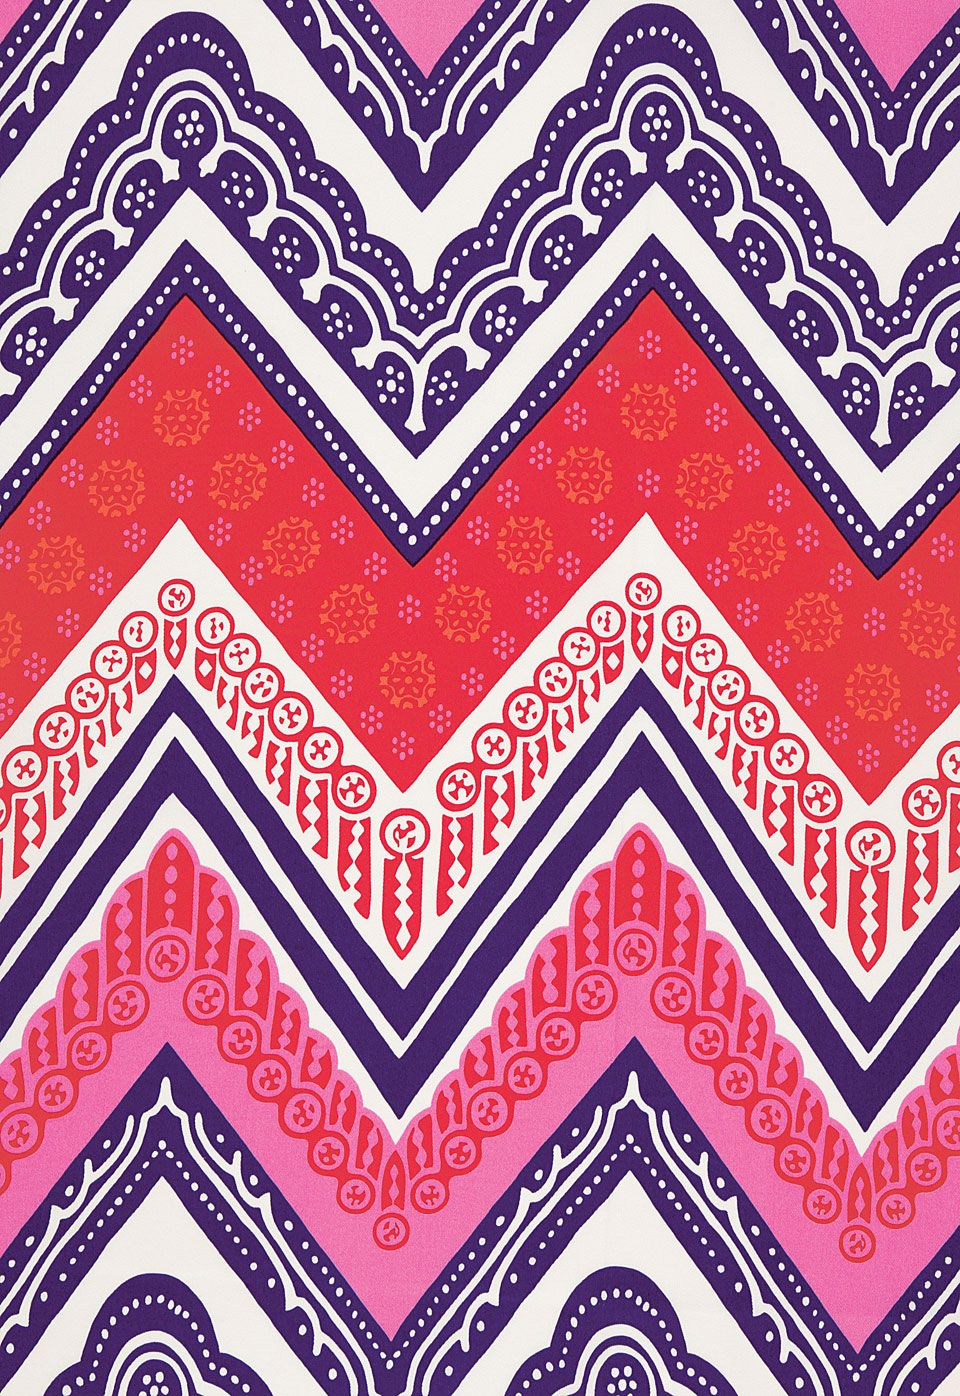 chevron style wallpaper - photo #32